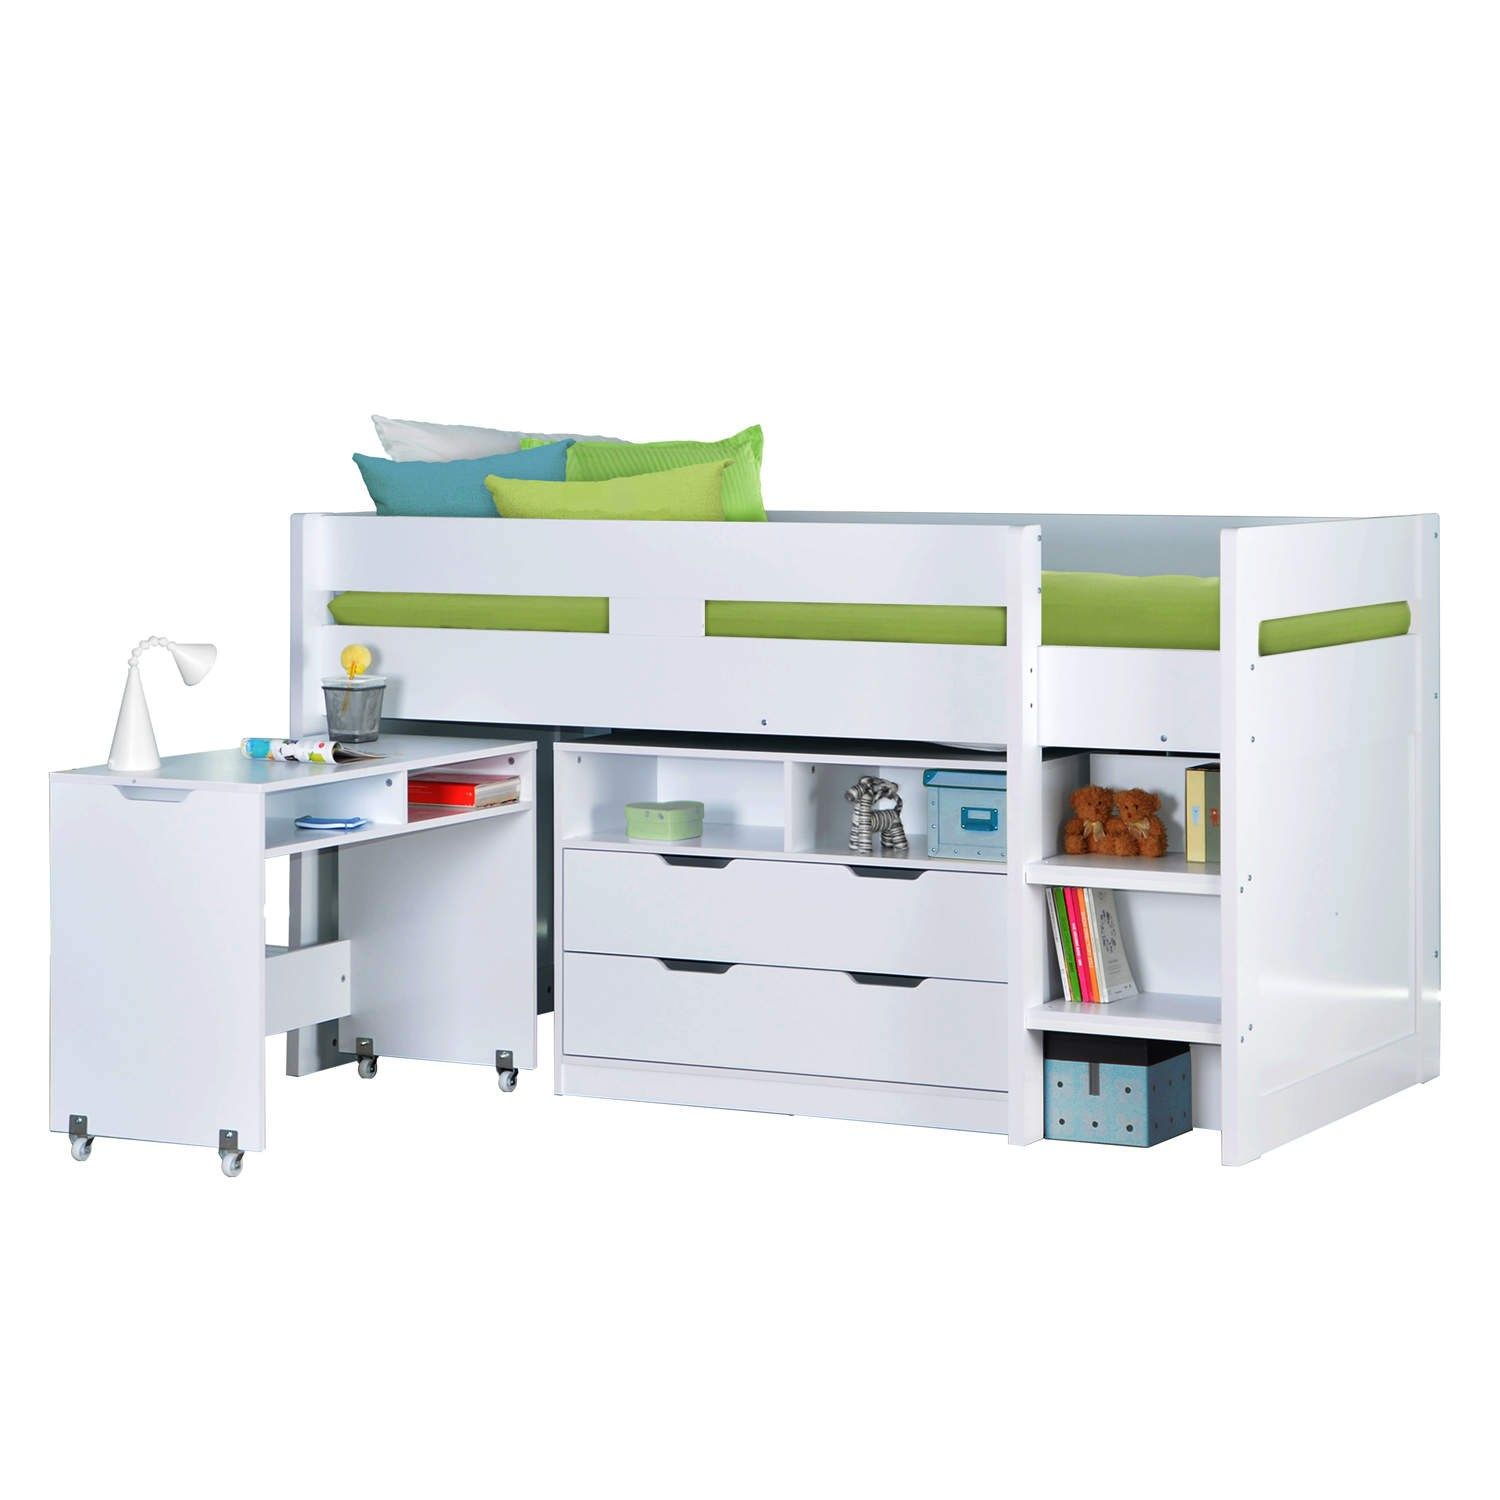 High sleeper loft style cabin bed with hideaway futon bed rutland - Buy Cosmo Mid Sleeper Bed In White From Furniture123 The Uk S Leading Online Furniture And